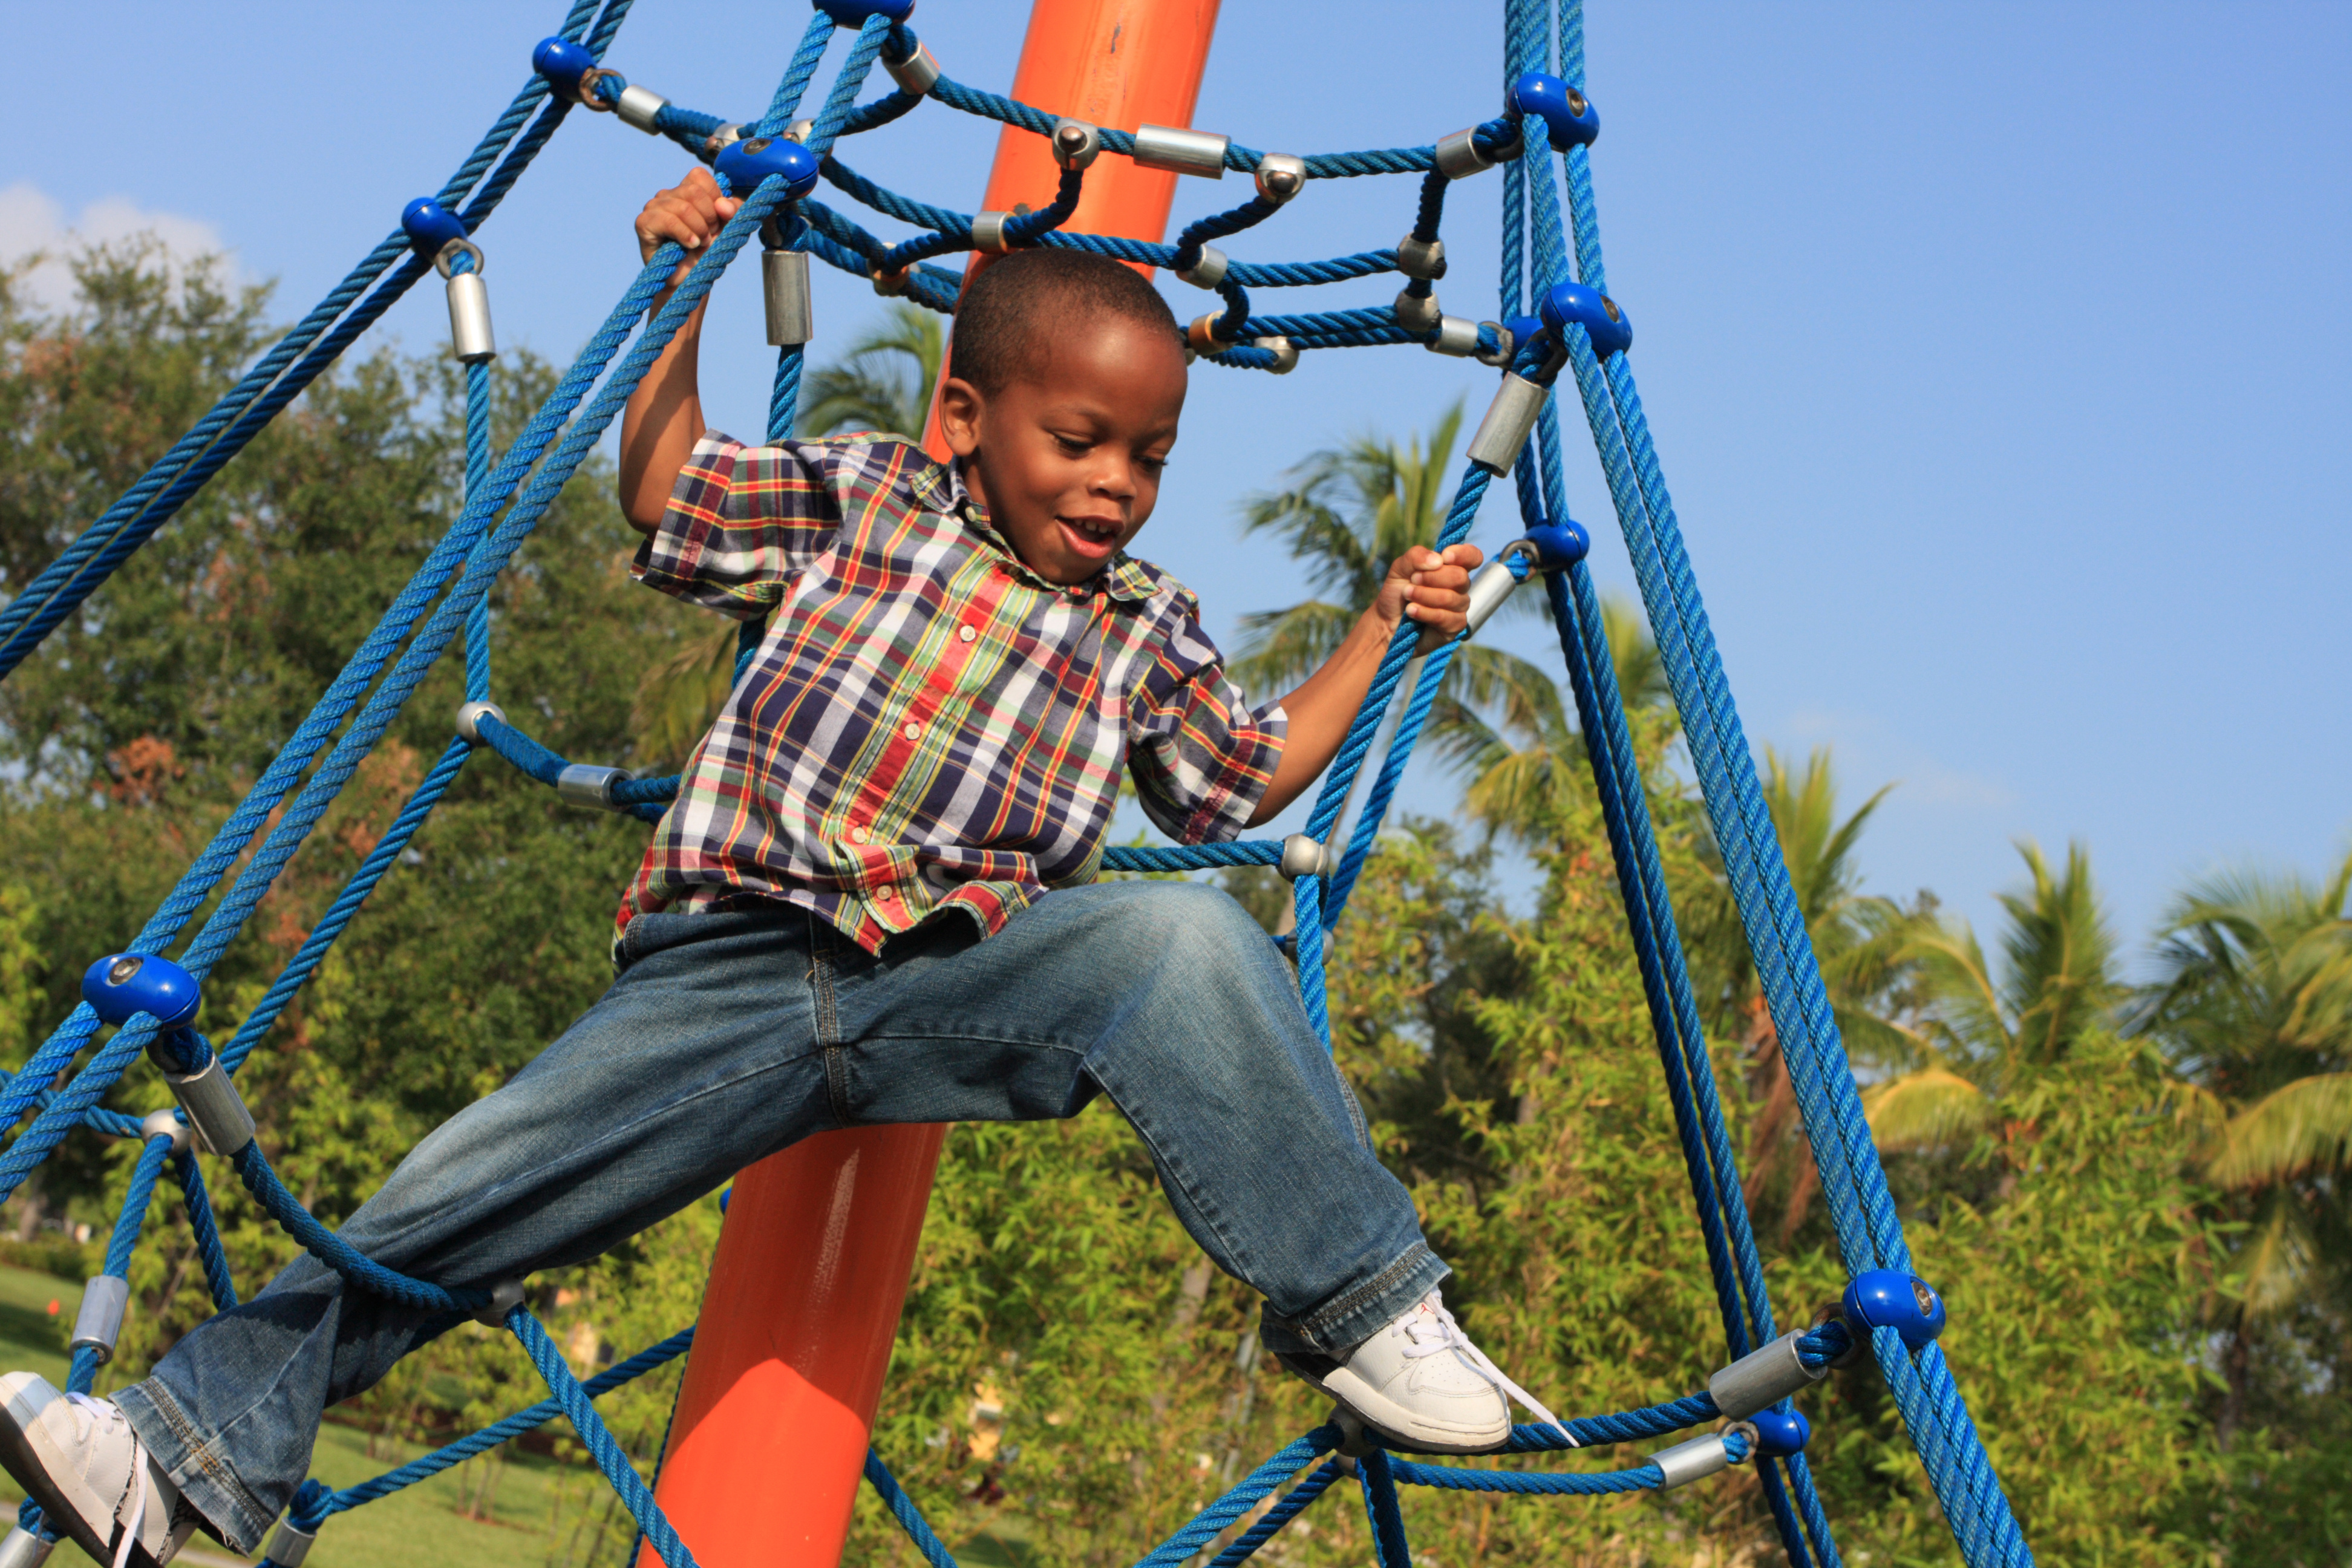 Boy playing on playground. Recess